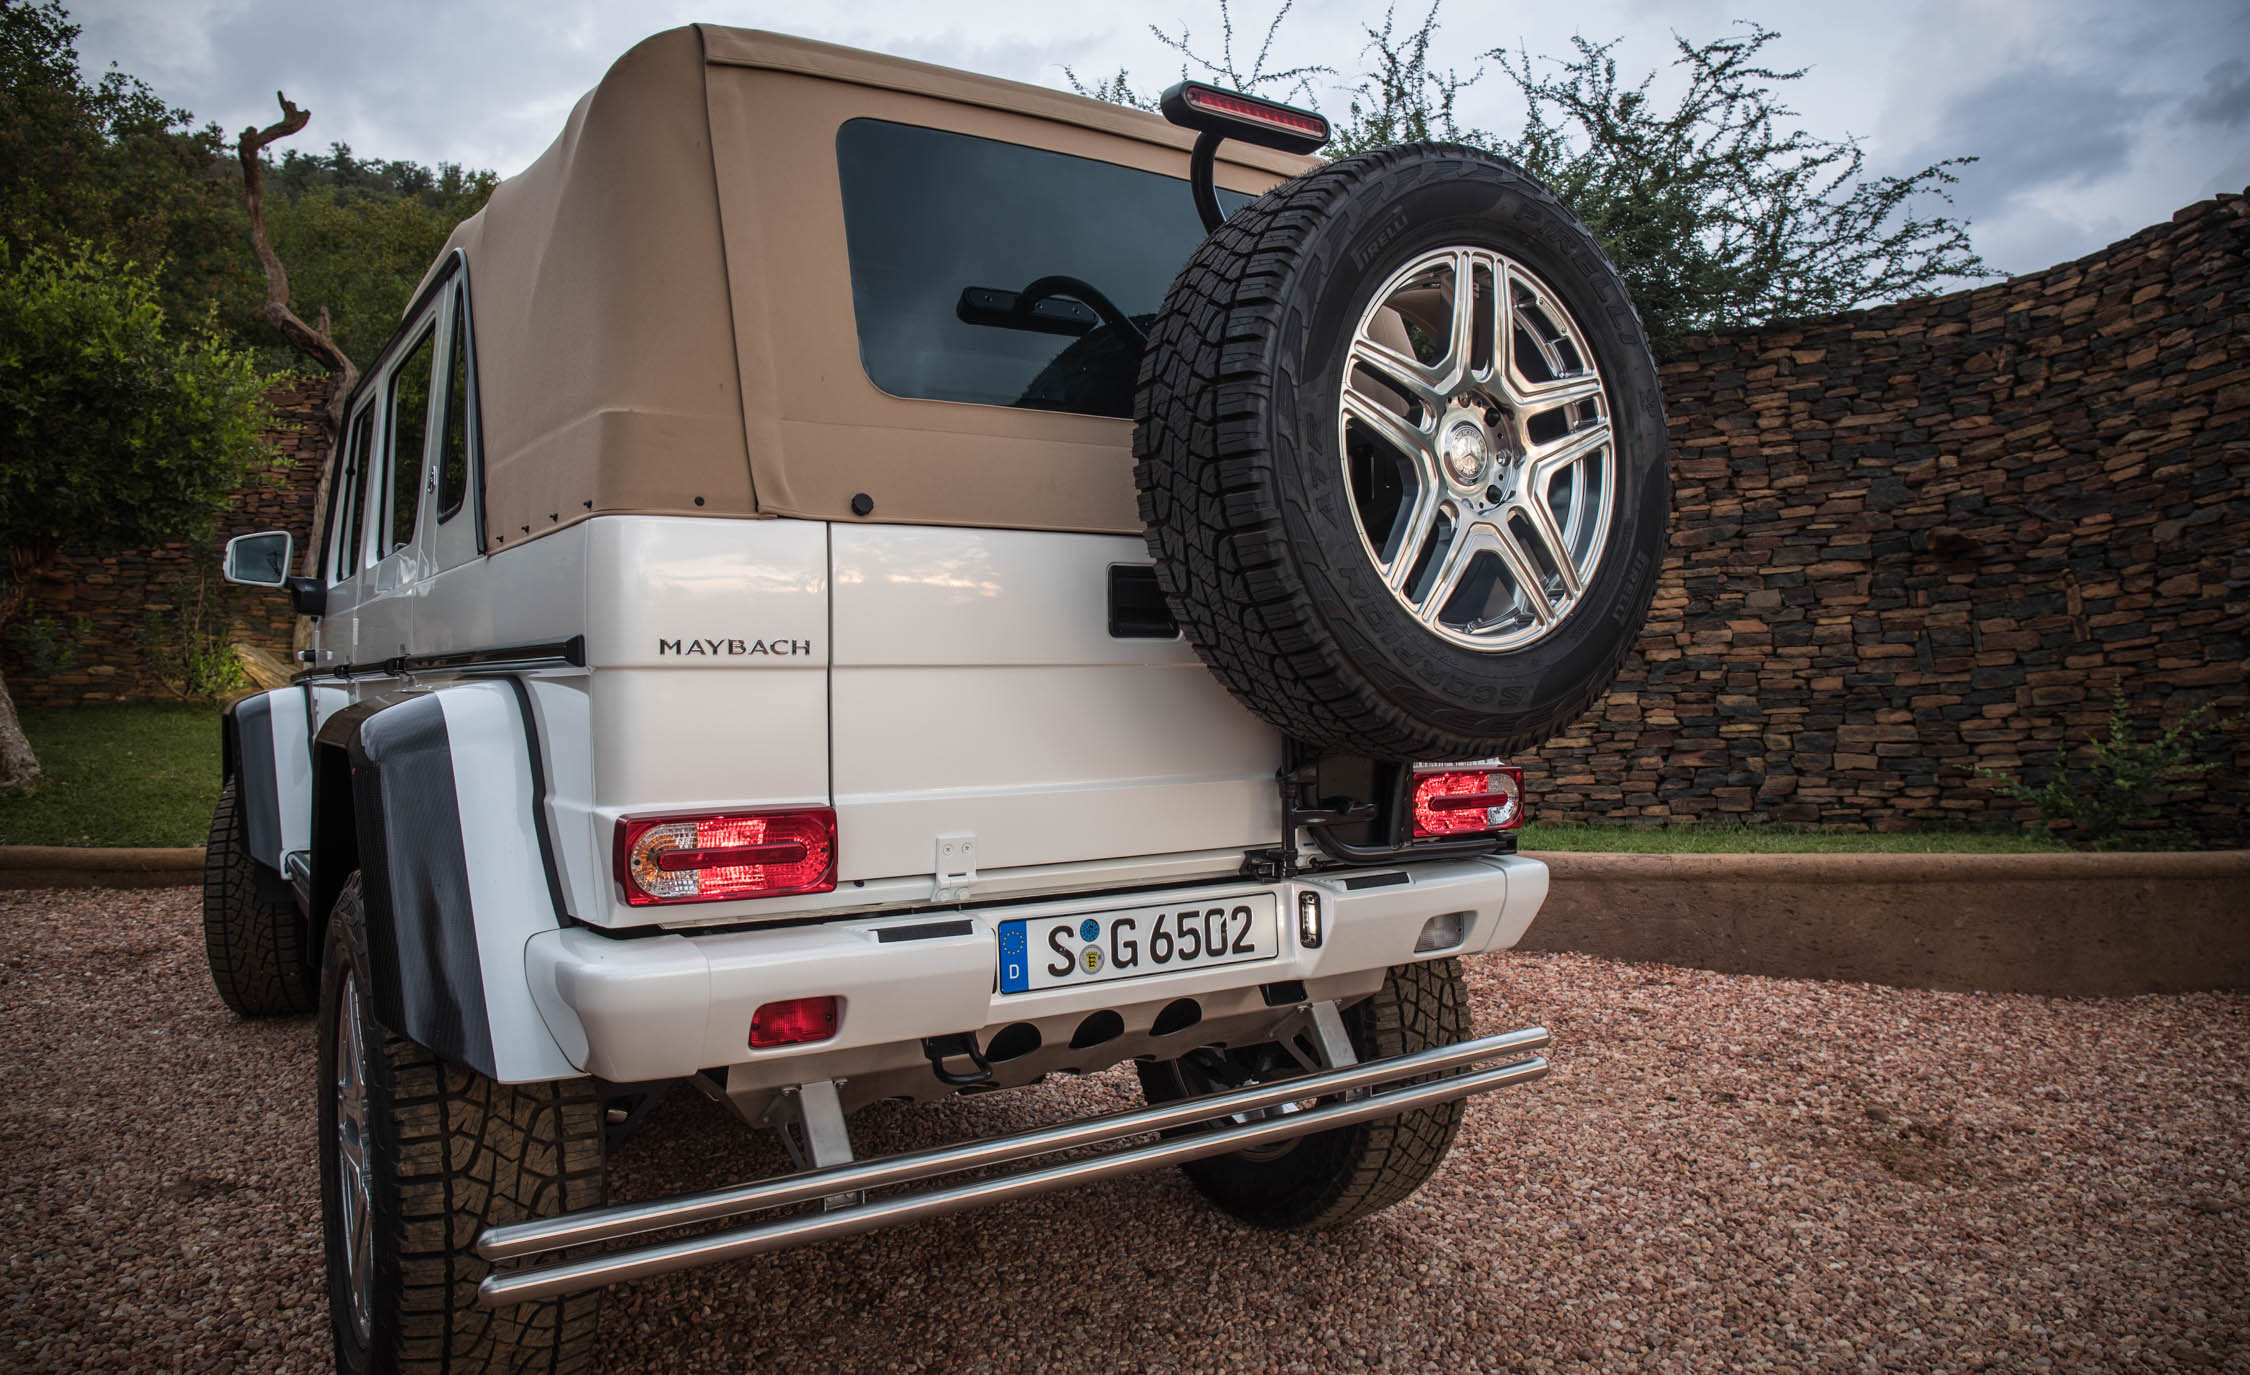 2018 Mercedes Maybach G650 Landaulet White Exterior Rear Roof Close (Photo 7 of 52)